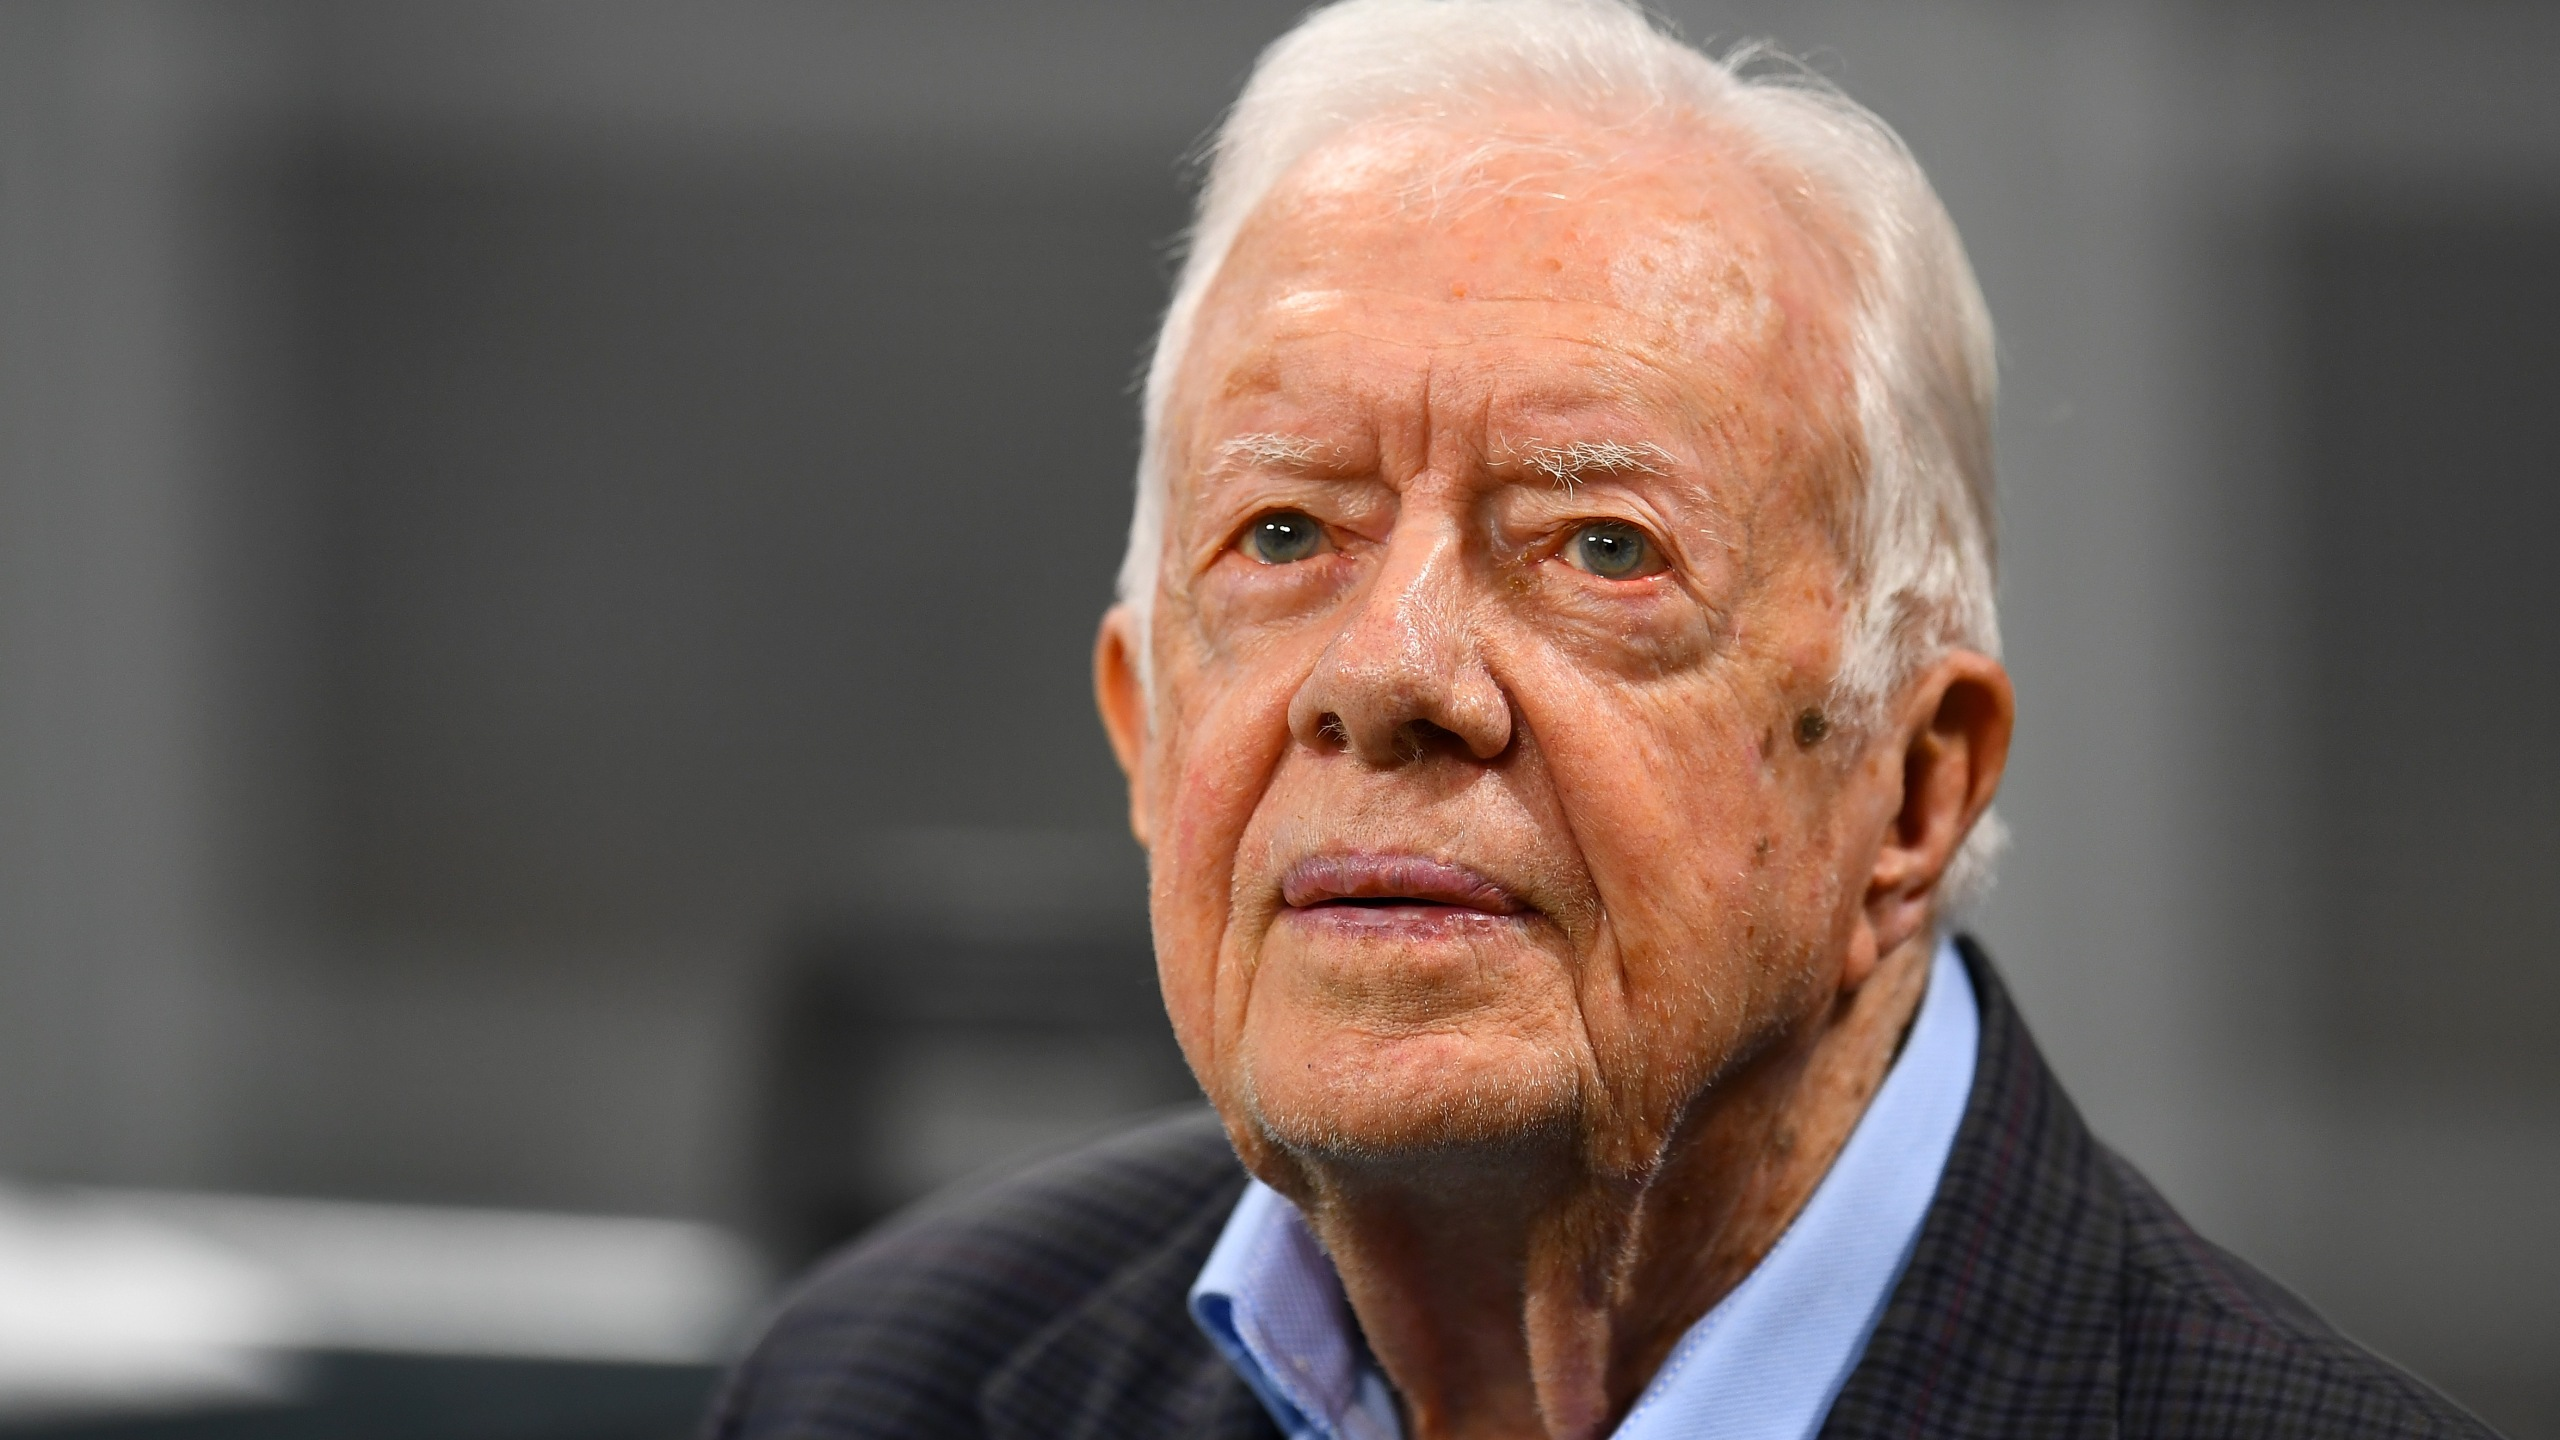 Former president Jimmy Carter looks on before a game between the Atlanta Falcons and the Cincinnati Bengals at Mercedes-Benz Stadium in Atlanta on Sept. 30, 2018. (Credit: Scott Cunningham/Getty Images)